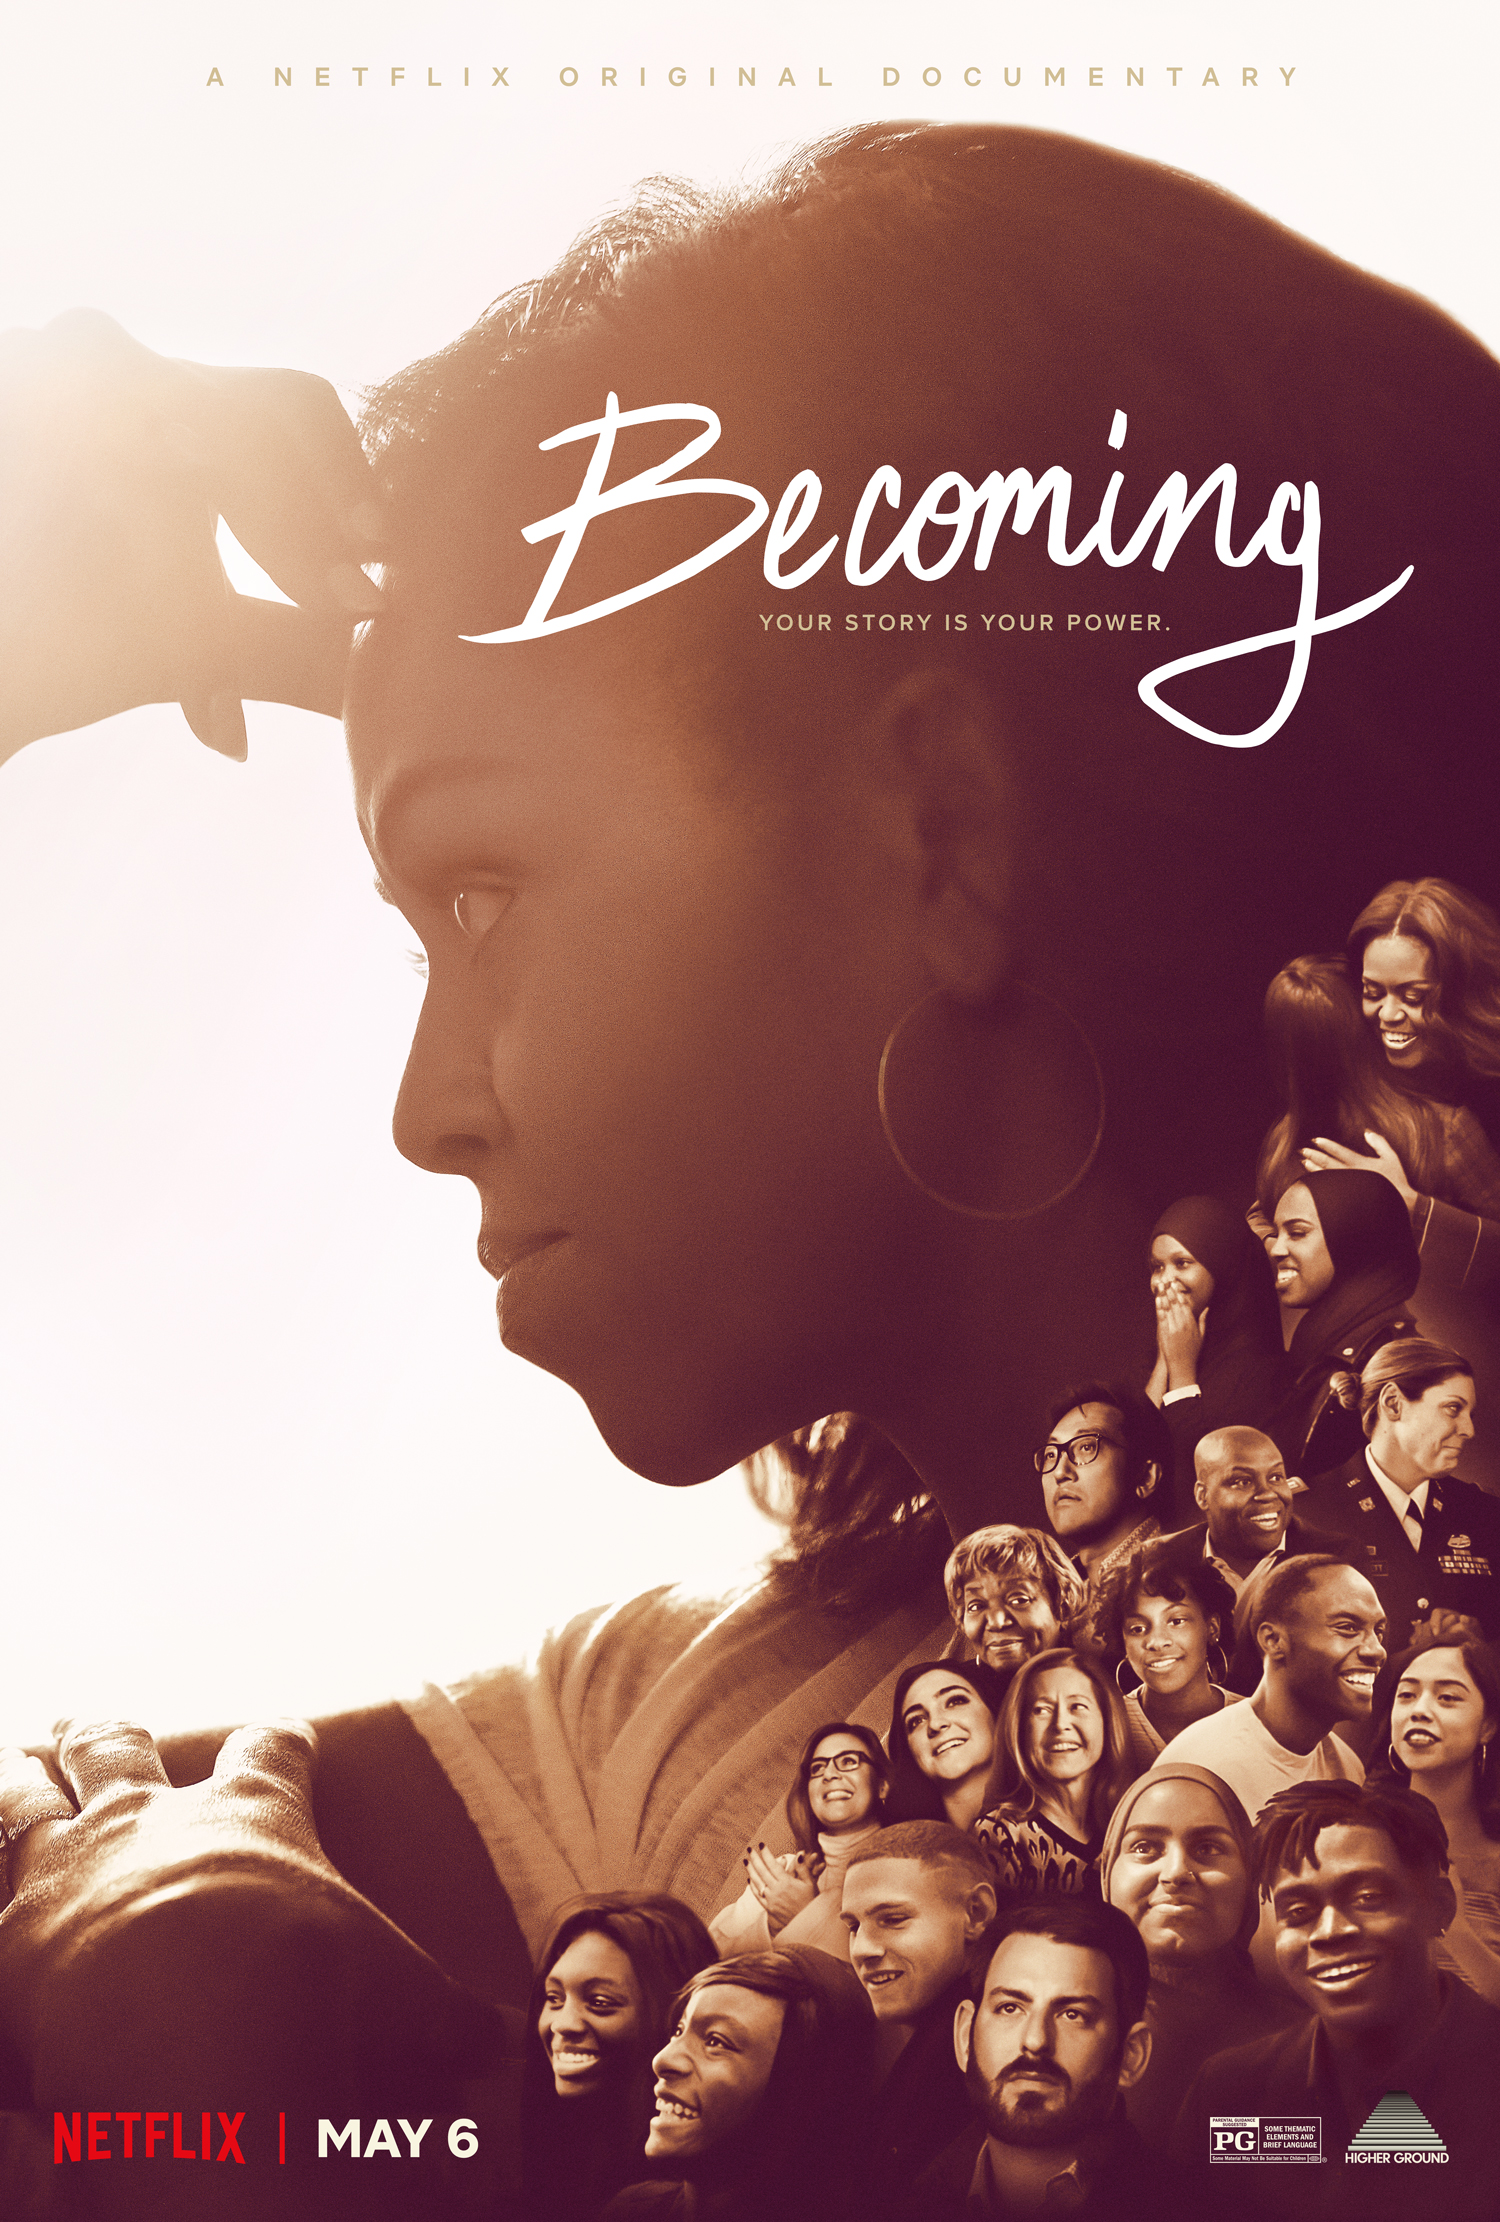 New Documentary: Netflix's Becoming Starring Michelle Obama